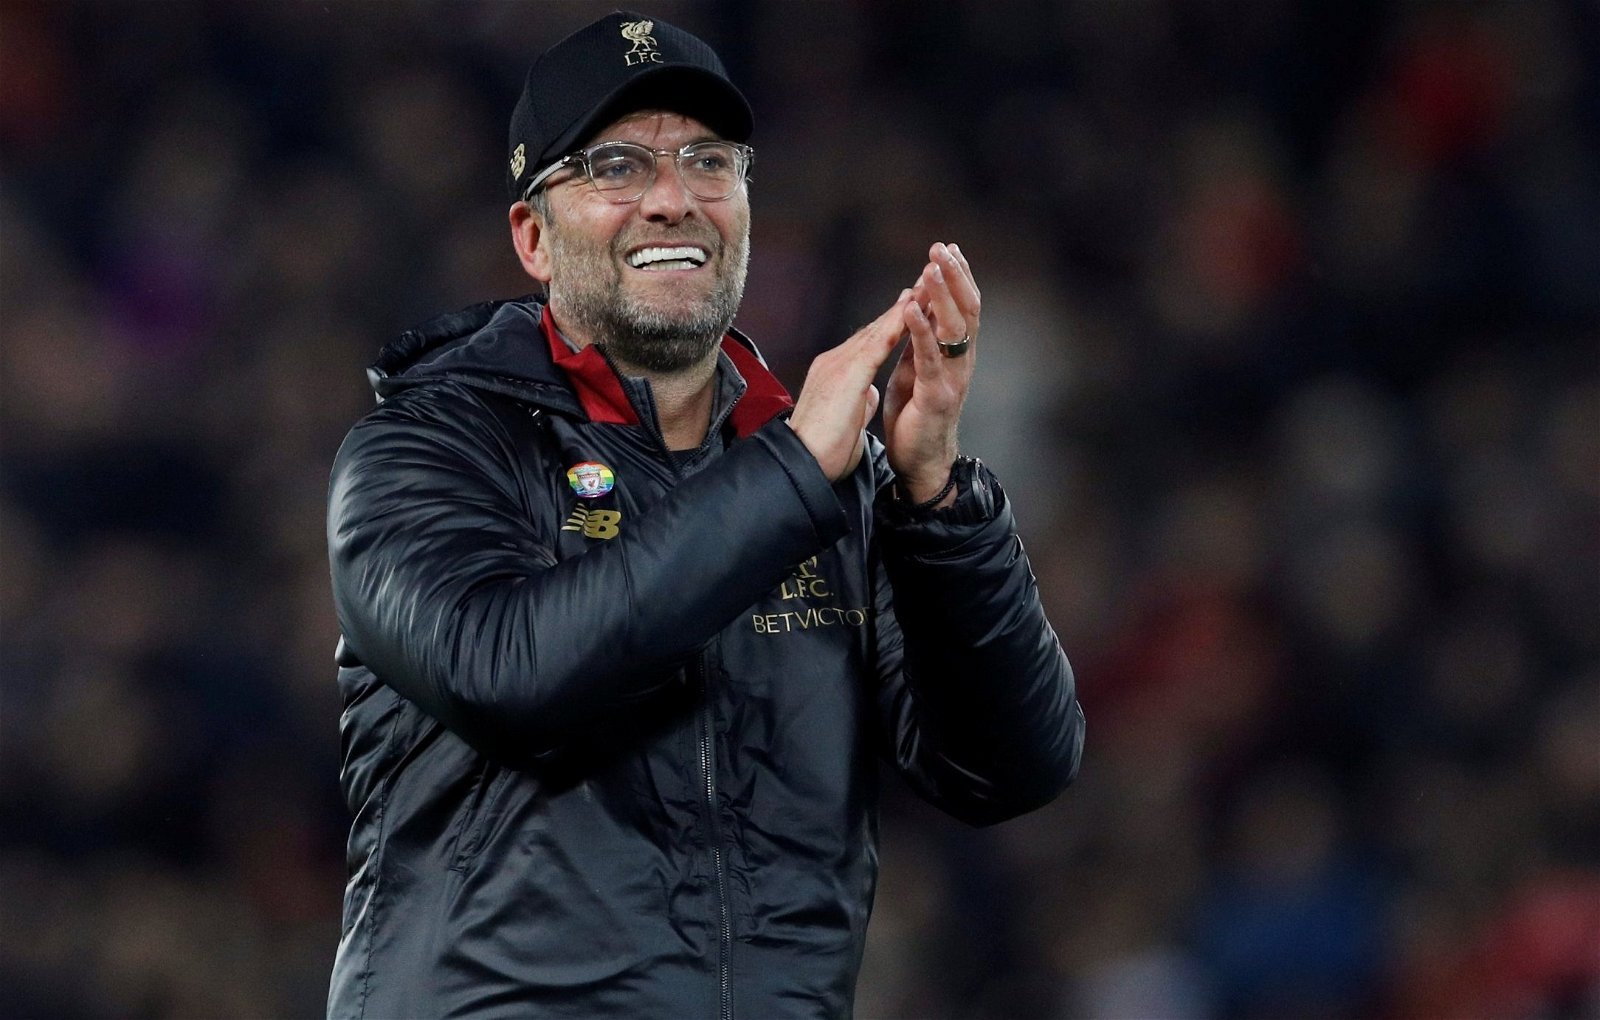 Liverpool manager Jurgen Klopp claps the fans after last-gasp Everton victory